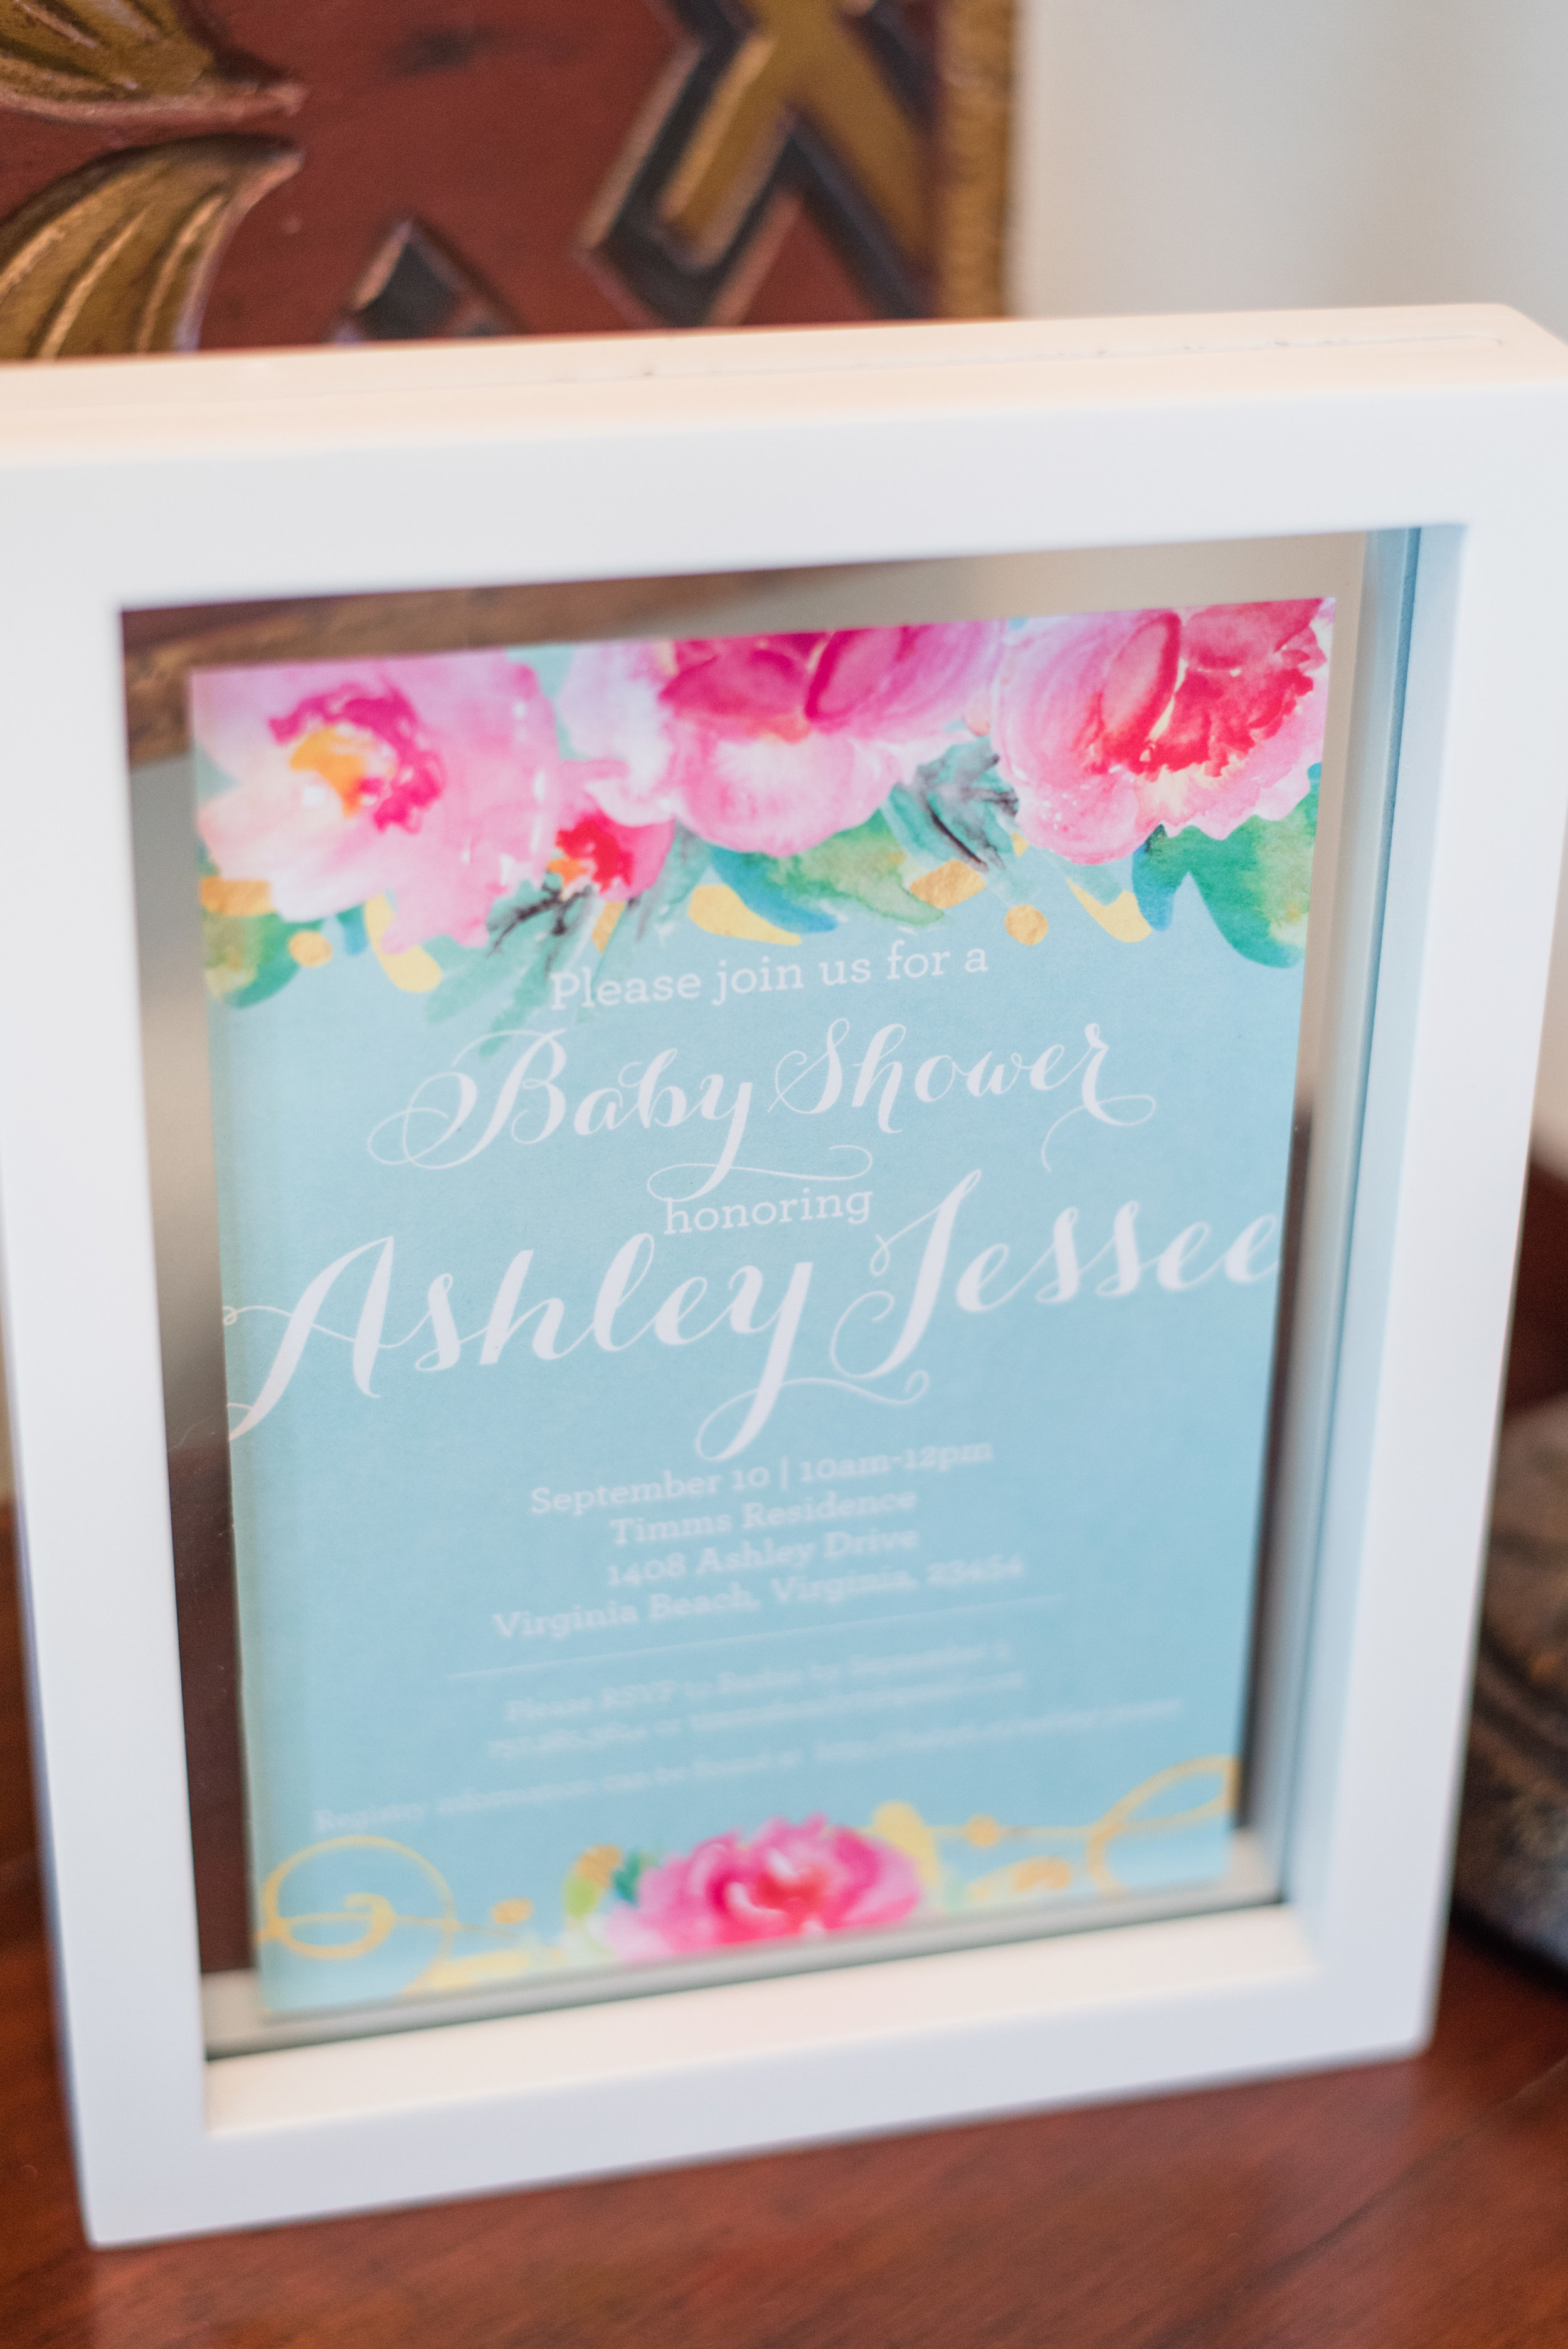 Invitation Design by The Creative Swell [Photo: Courtney Timms Photography]